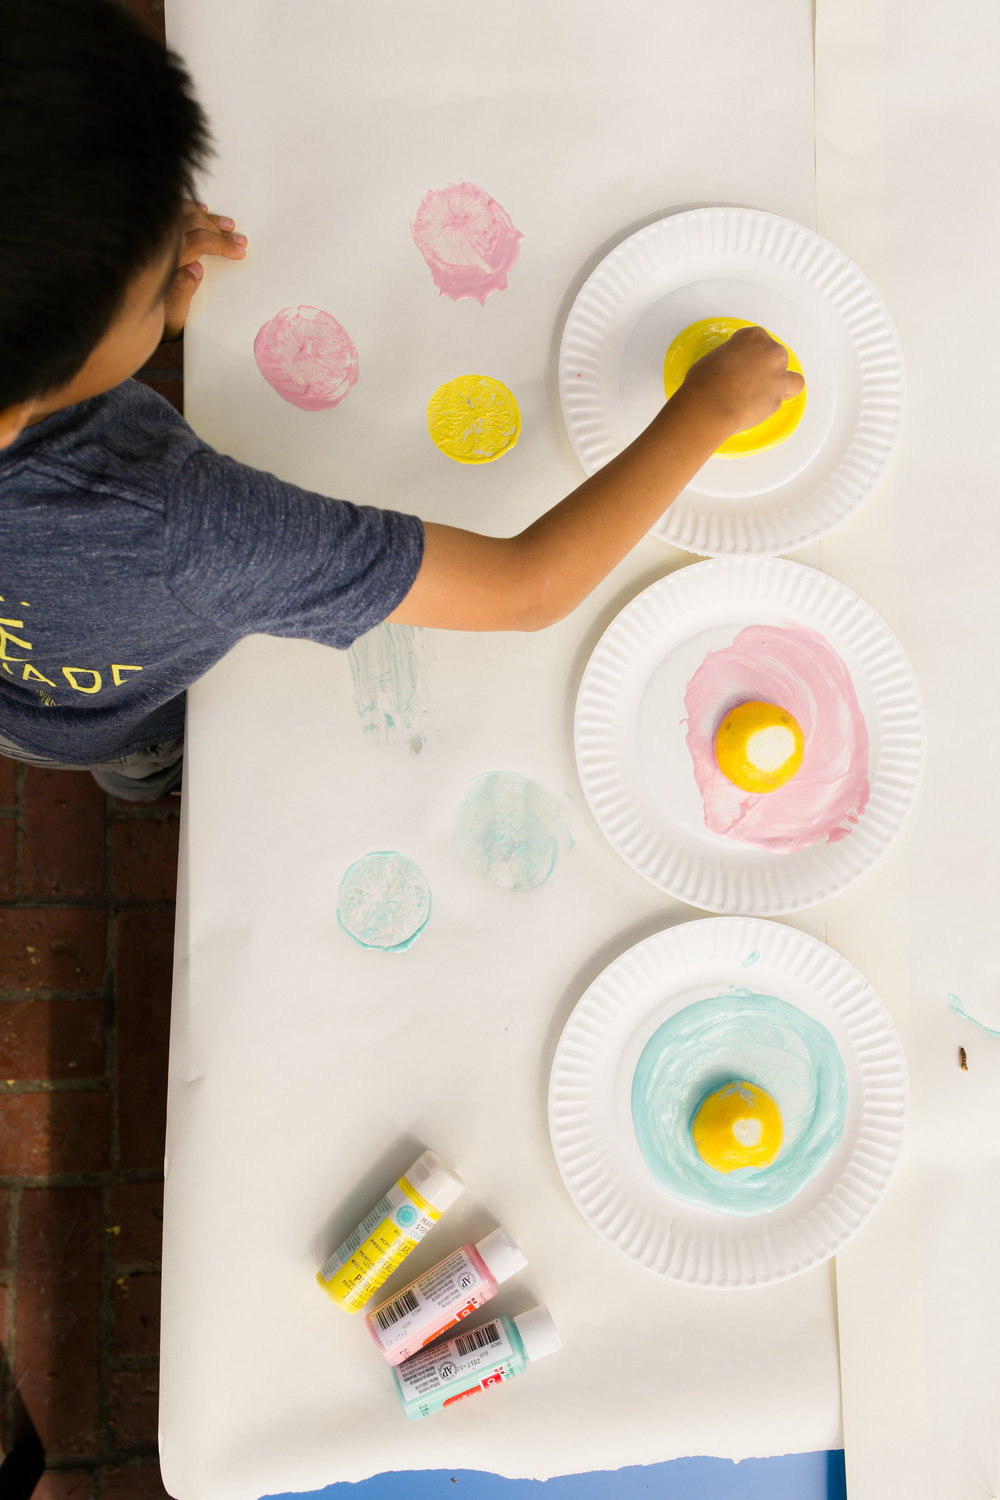 Lemonade Kids Birthday Lemon Stamping Craft - DIY Real Lemon Stamps with Paint